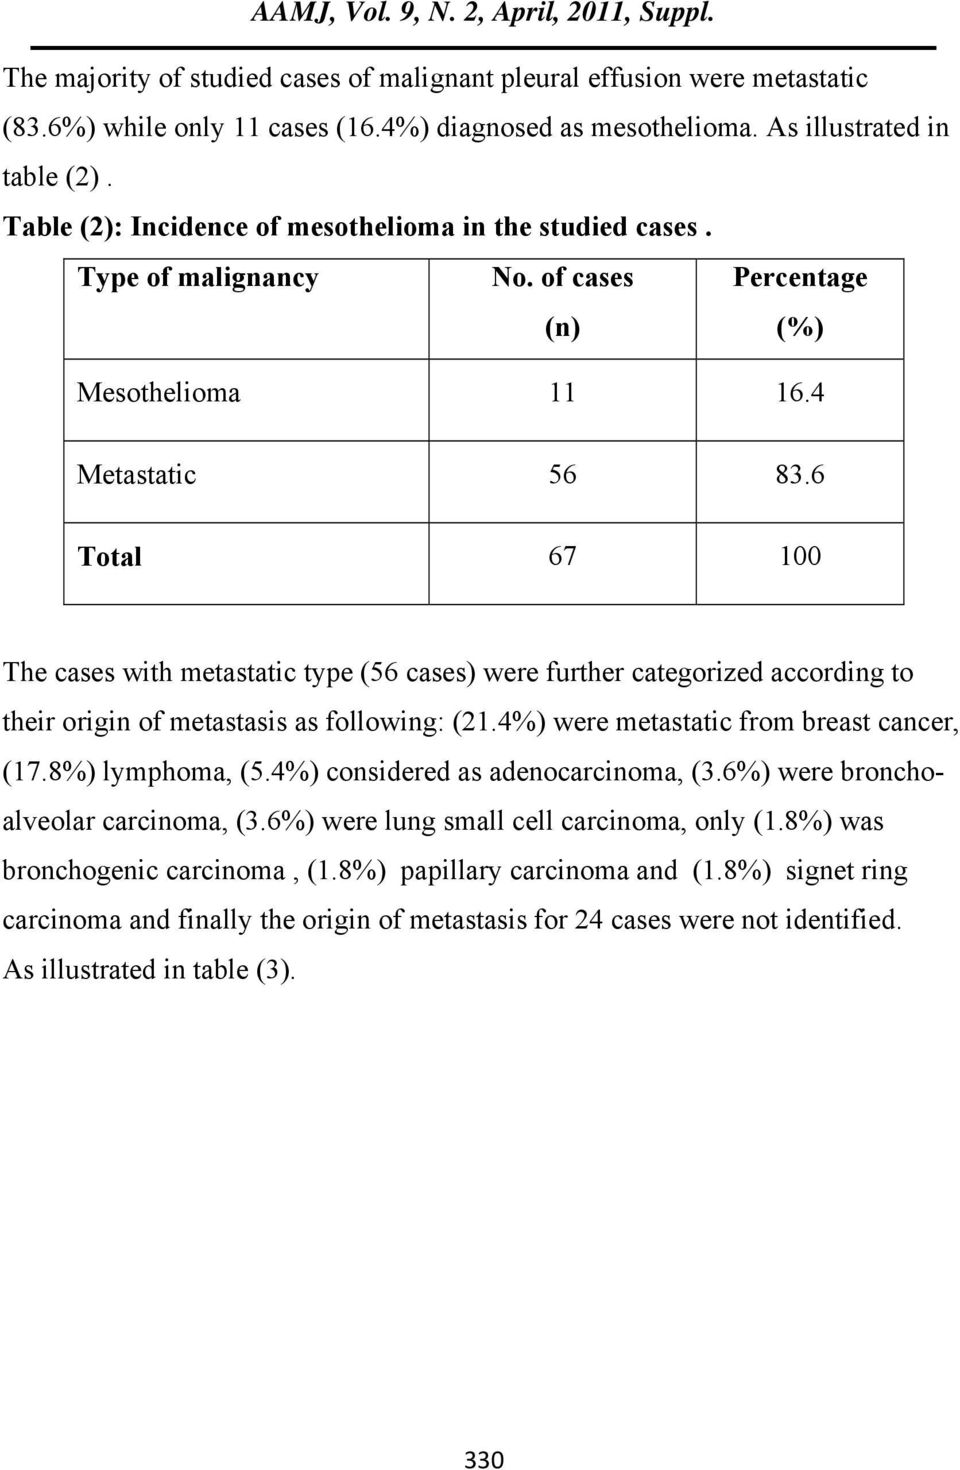 6 Total 67 100 The cases with metastatic type (56 cases) were further categorized according to their origin of metastasis as following: (21.4%) were metastatic from breast cancer, (17.